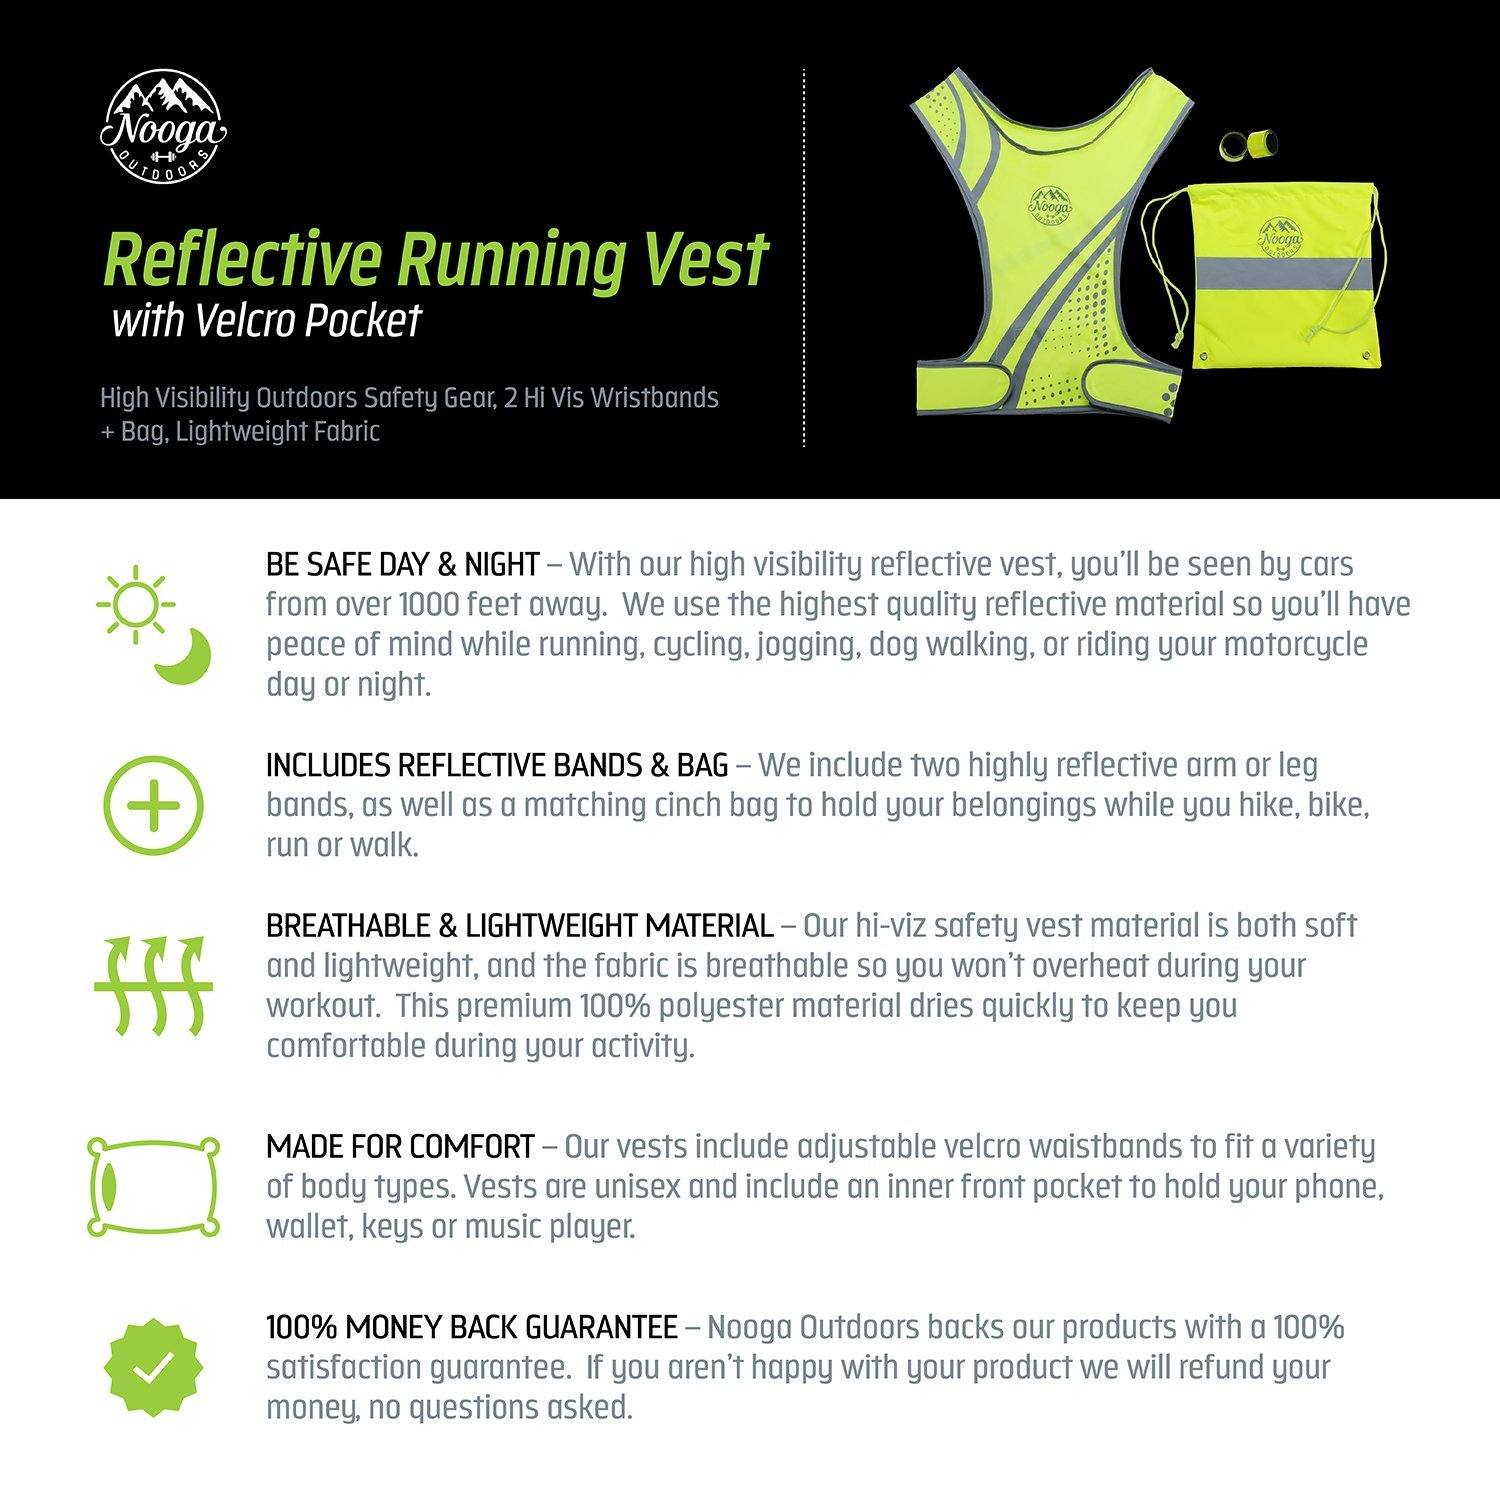 2 Hi Vis Wristbands Lightweight Fabric Reflective Running Vest with Pocket for Cycling Jogging Biking Hiking Dog Walking Motorcycle High Visibility Outdoors Safety Gear Bag